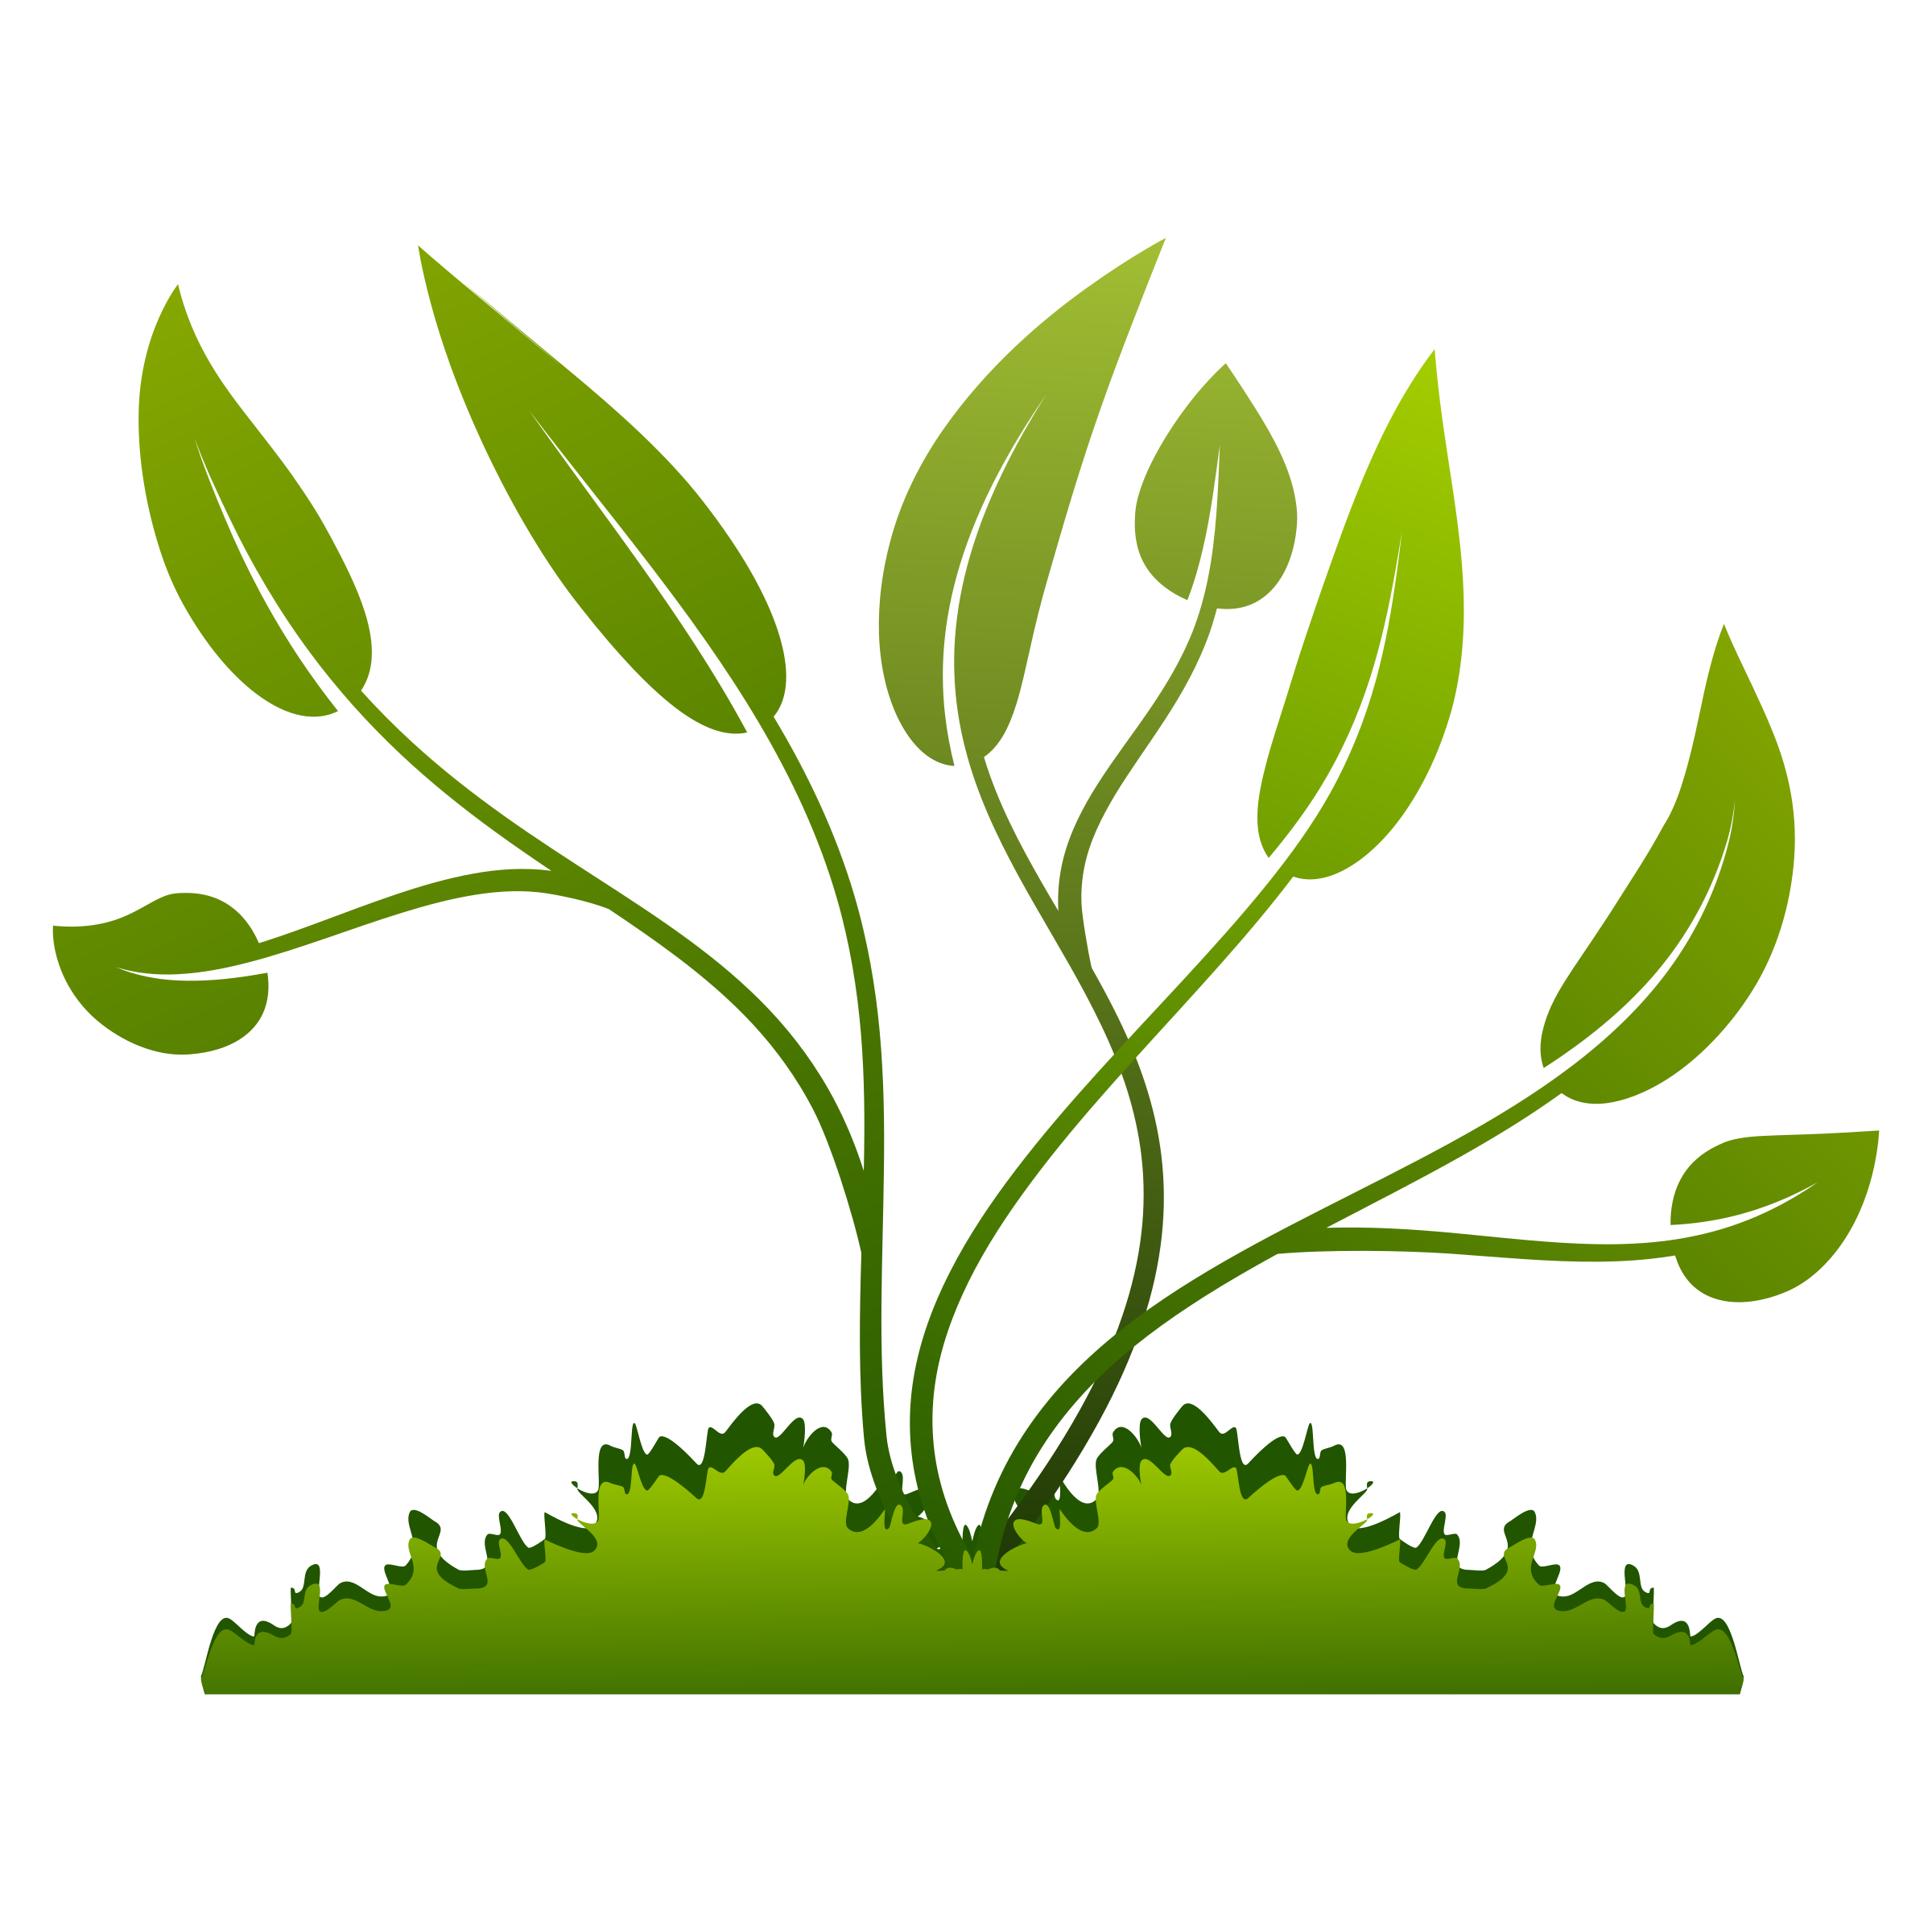 Plants growing out of the Ground vector clipart image.